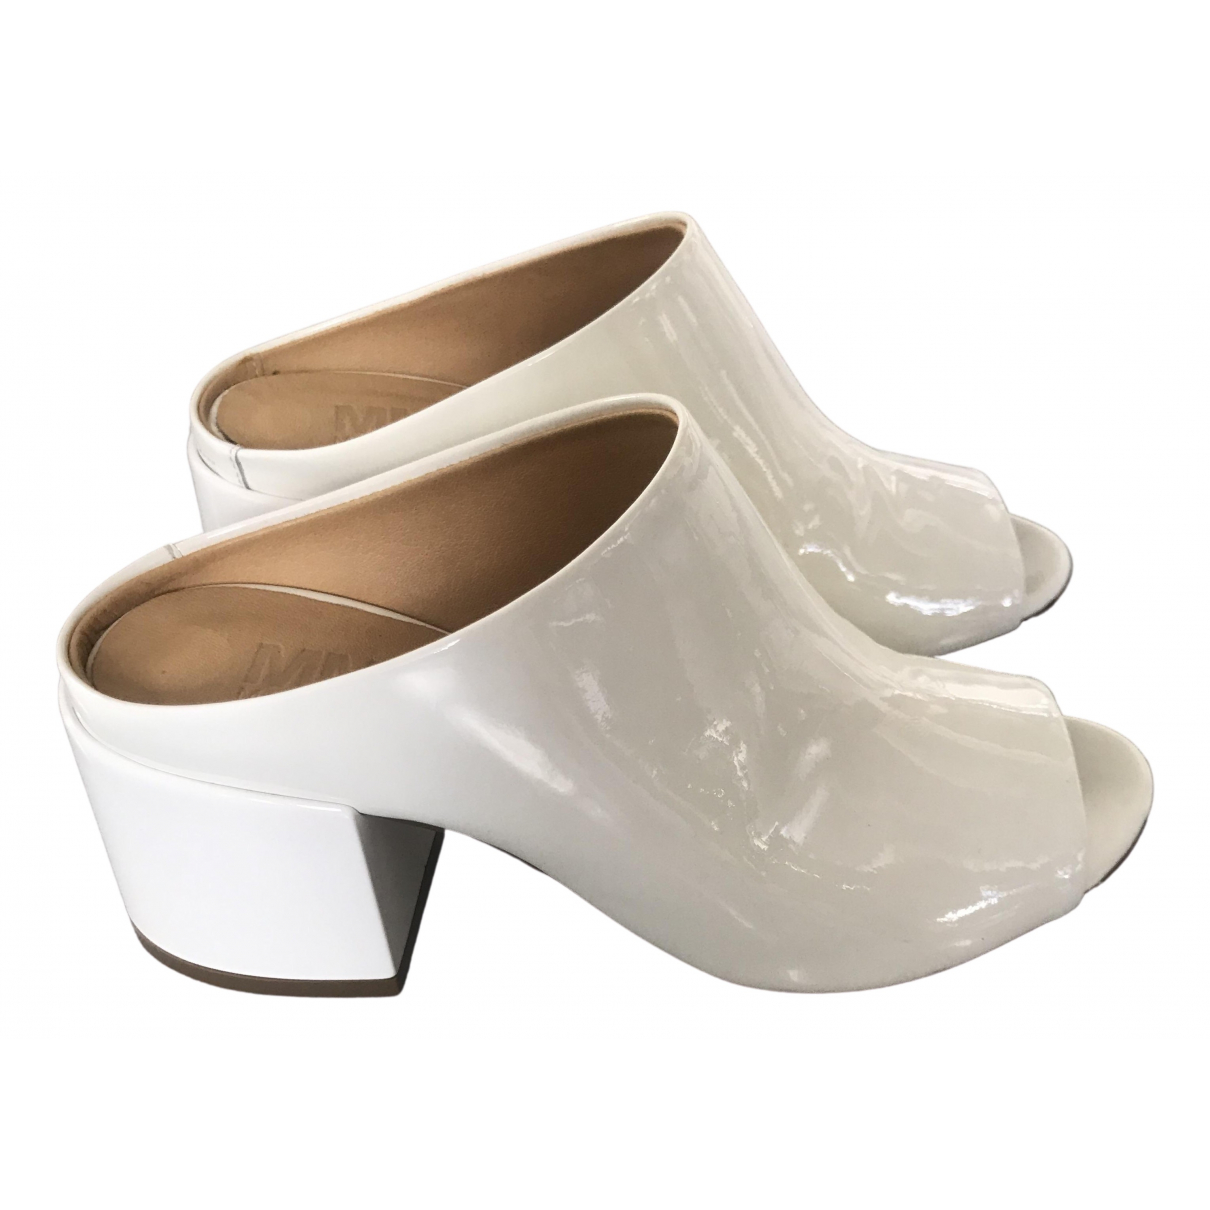 Maison Martin Margiela \N White Patent leather Sandals for Women 37 EU